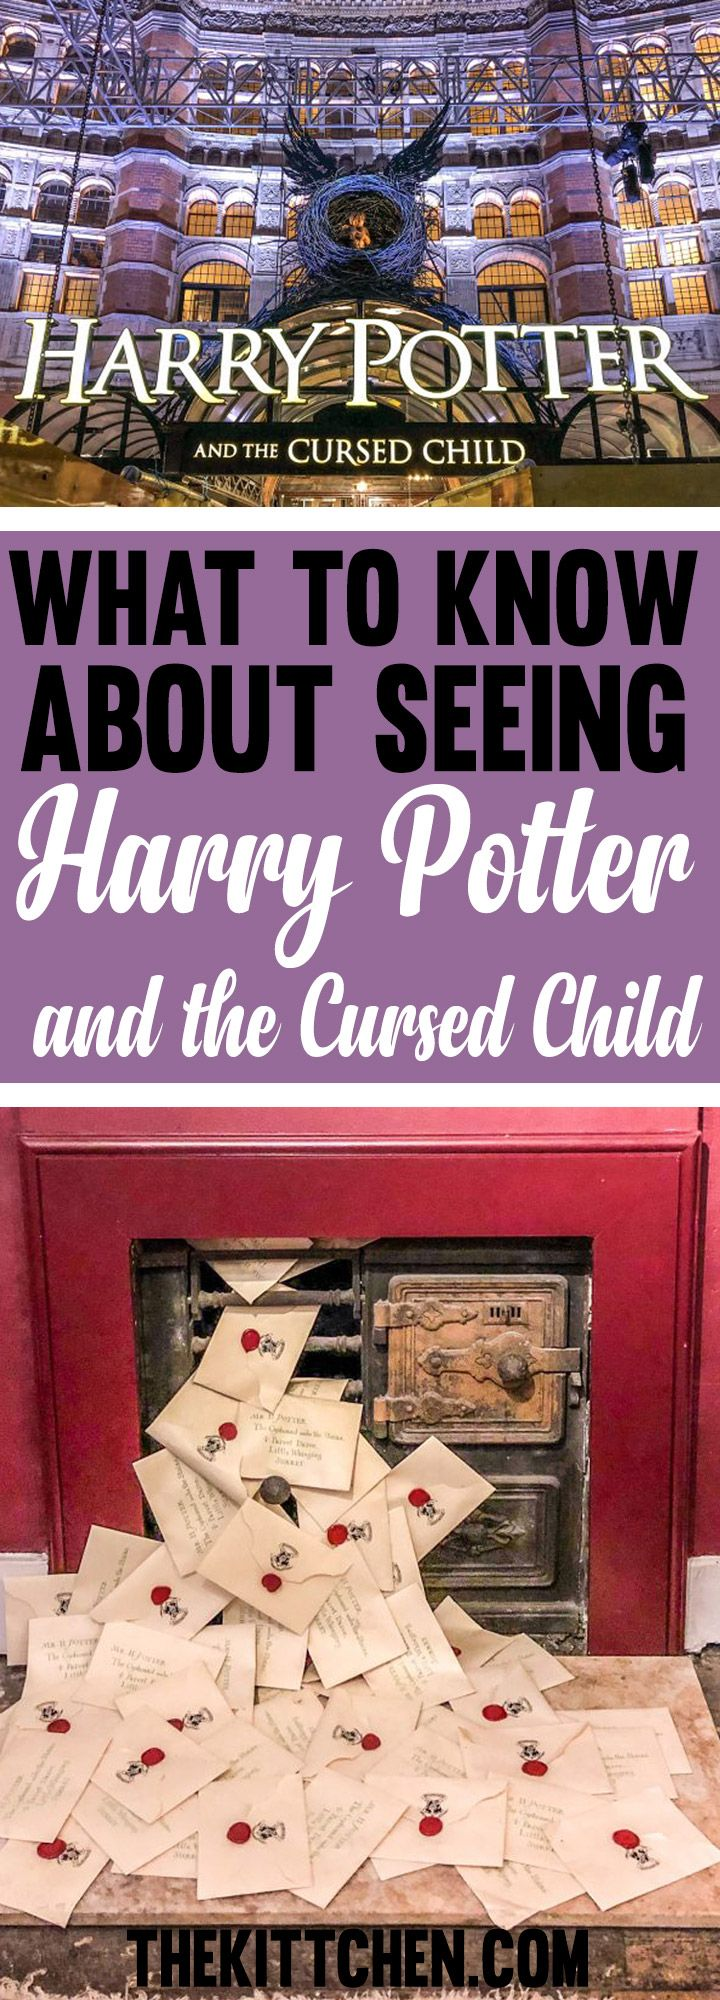 Without giving anything away, I help you be prepared to see this magnificent show. #harrypotter #london  ********** Harry Potter | Harry Potter and the Cursed Child | Things to do in London | London travel | Europe travel | UK travel | London shows